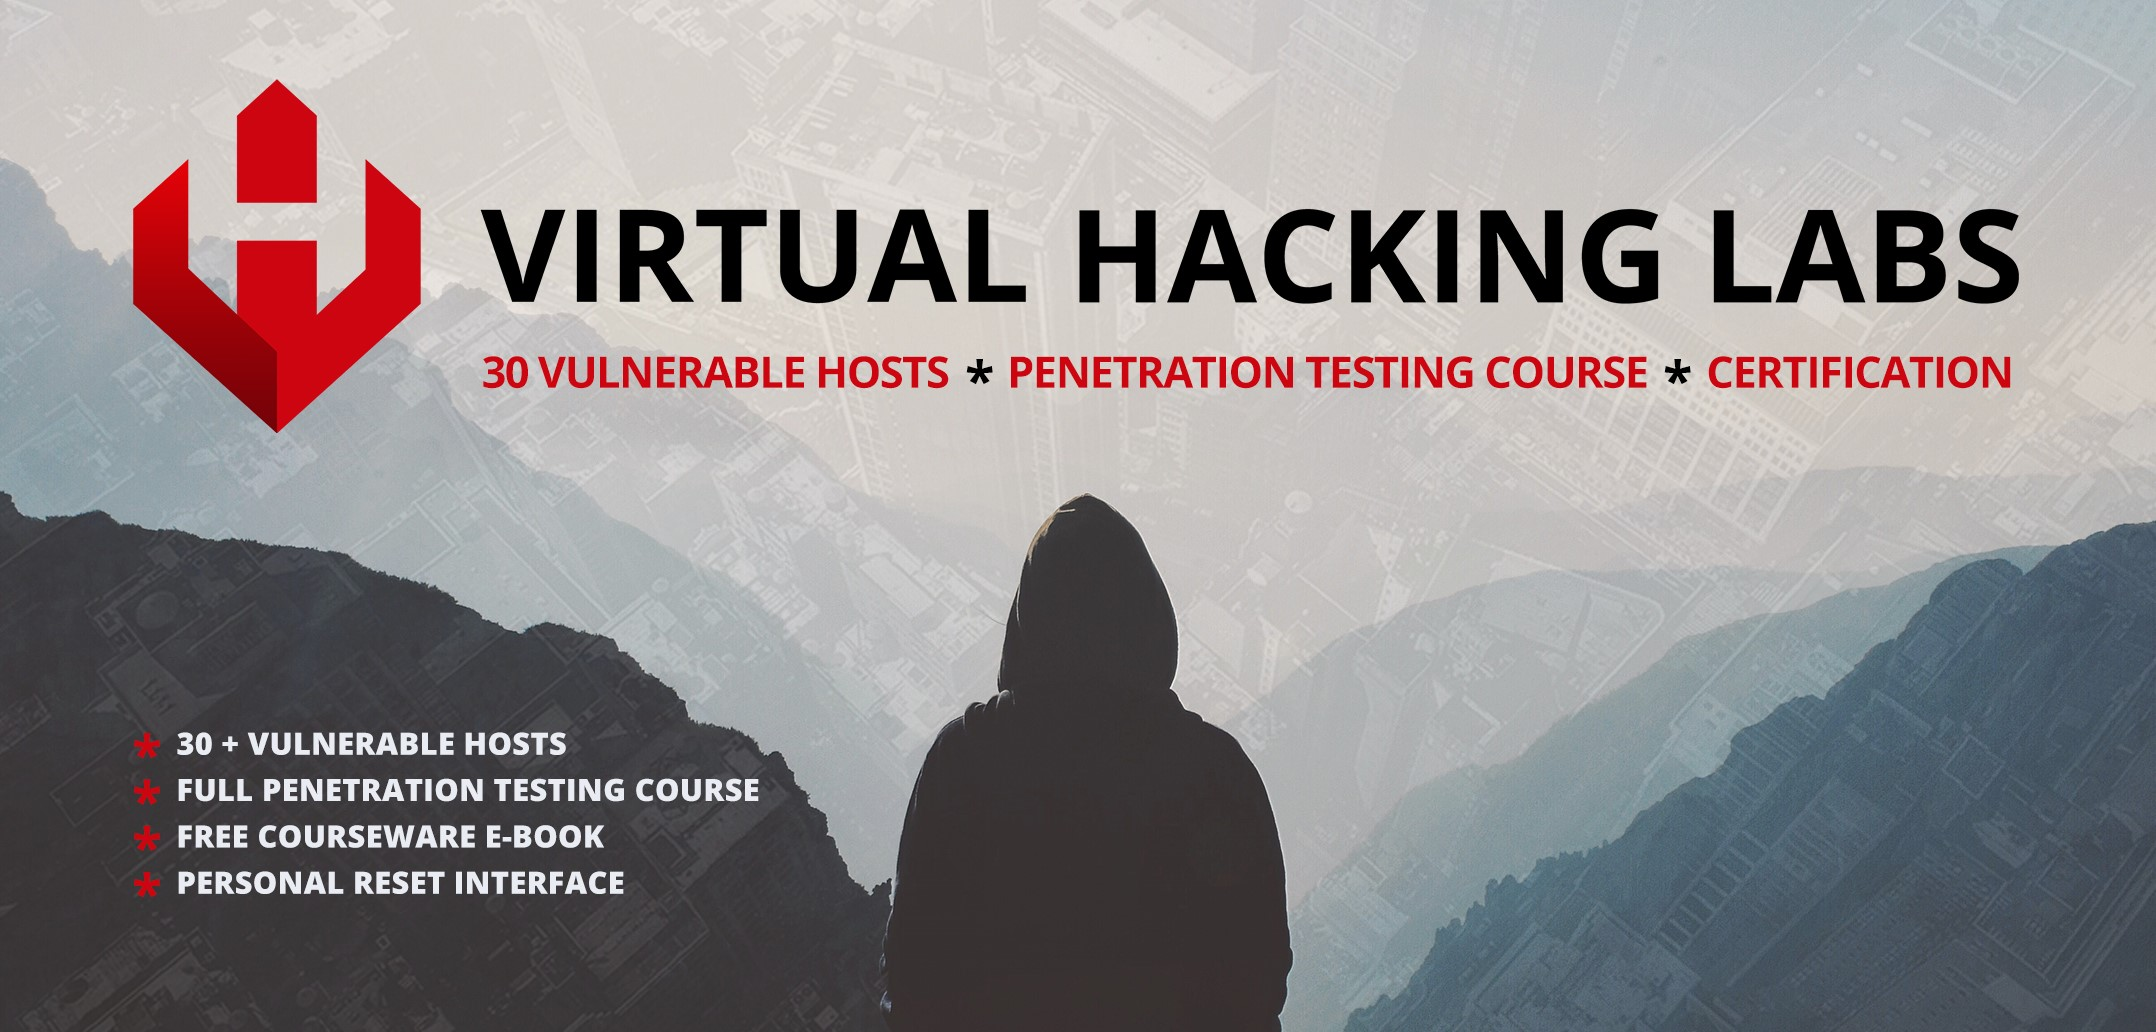 Hacking Tutorials - The best Step-by-Step Hacking Tutorials